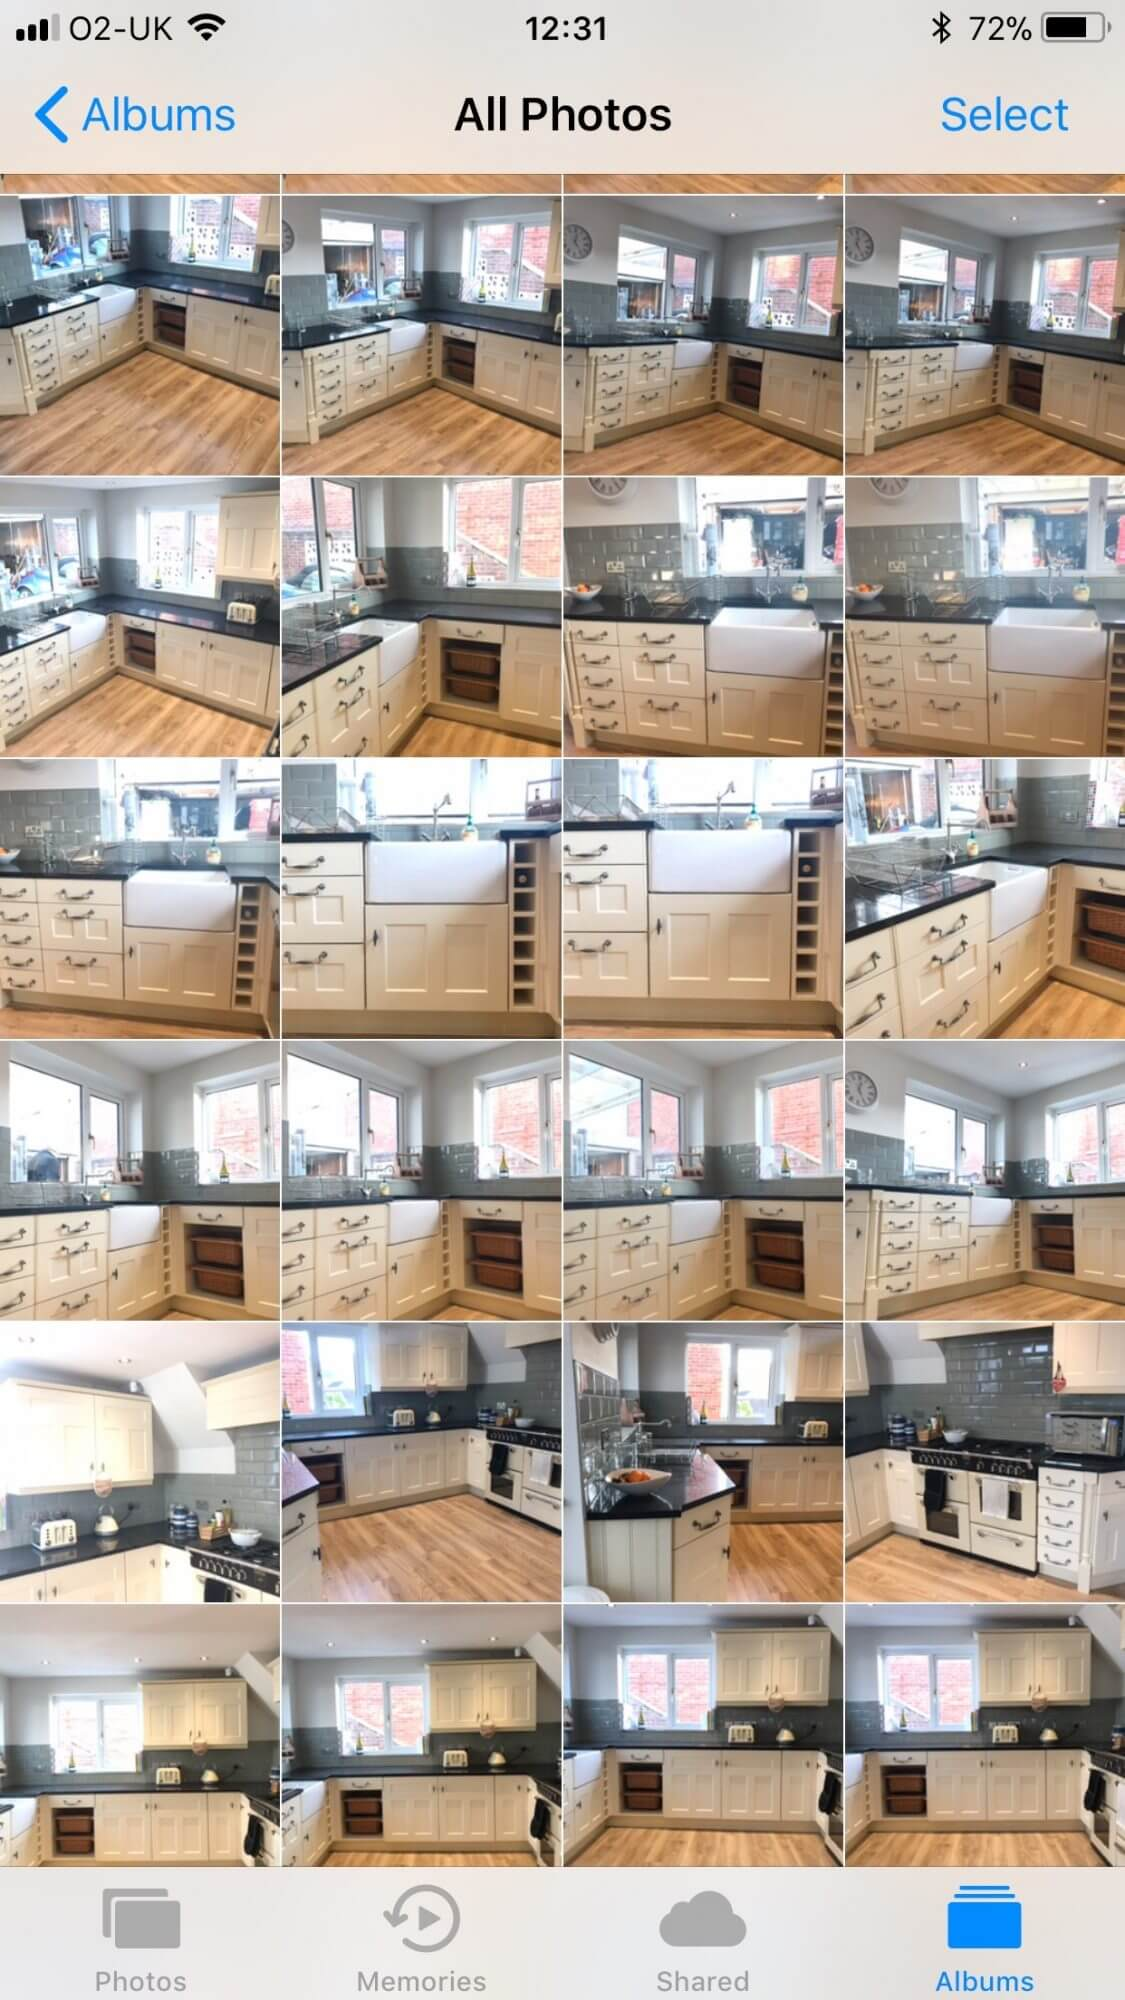 Phone camera reel showing loads of pictures of the same kitchen from tons of different angles